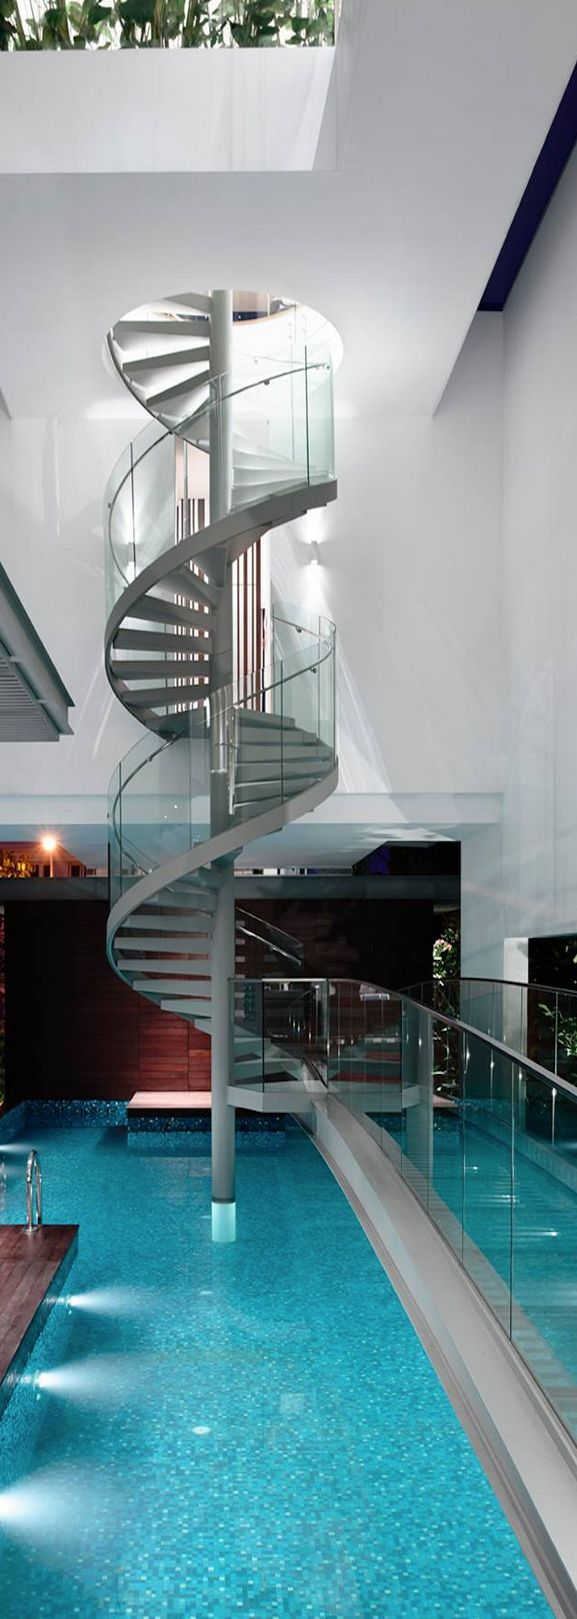 HYLA Architects. Glass accented spiral staircase.  Luxuryprivatelistings.com #architecture #pools #design